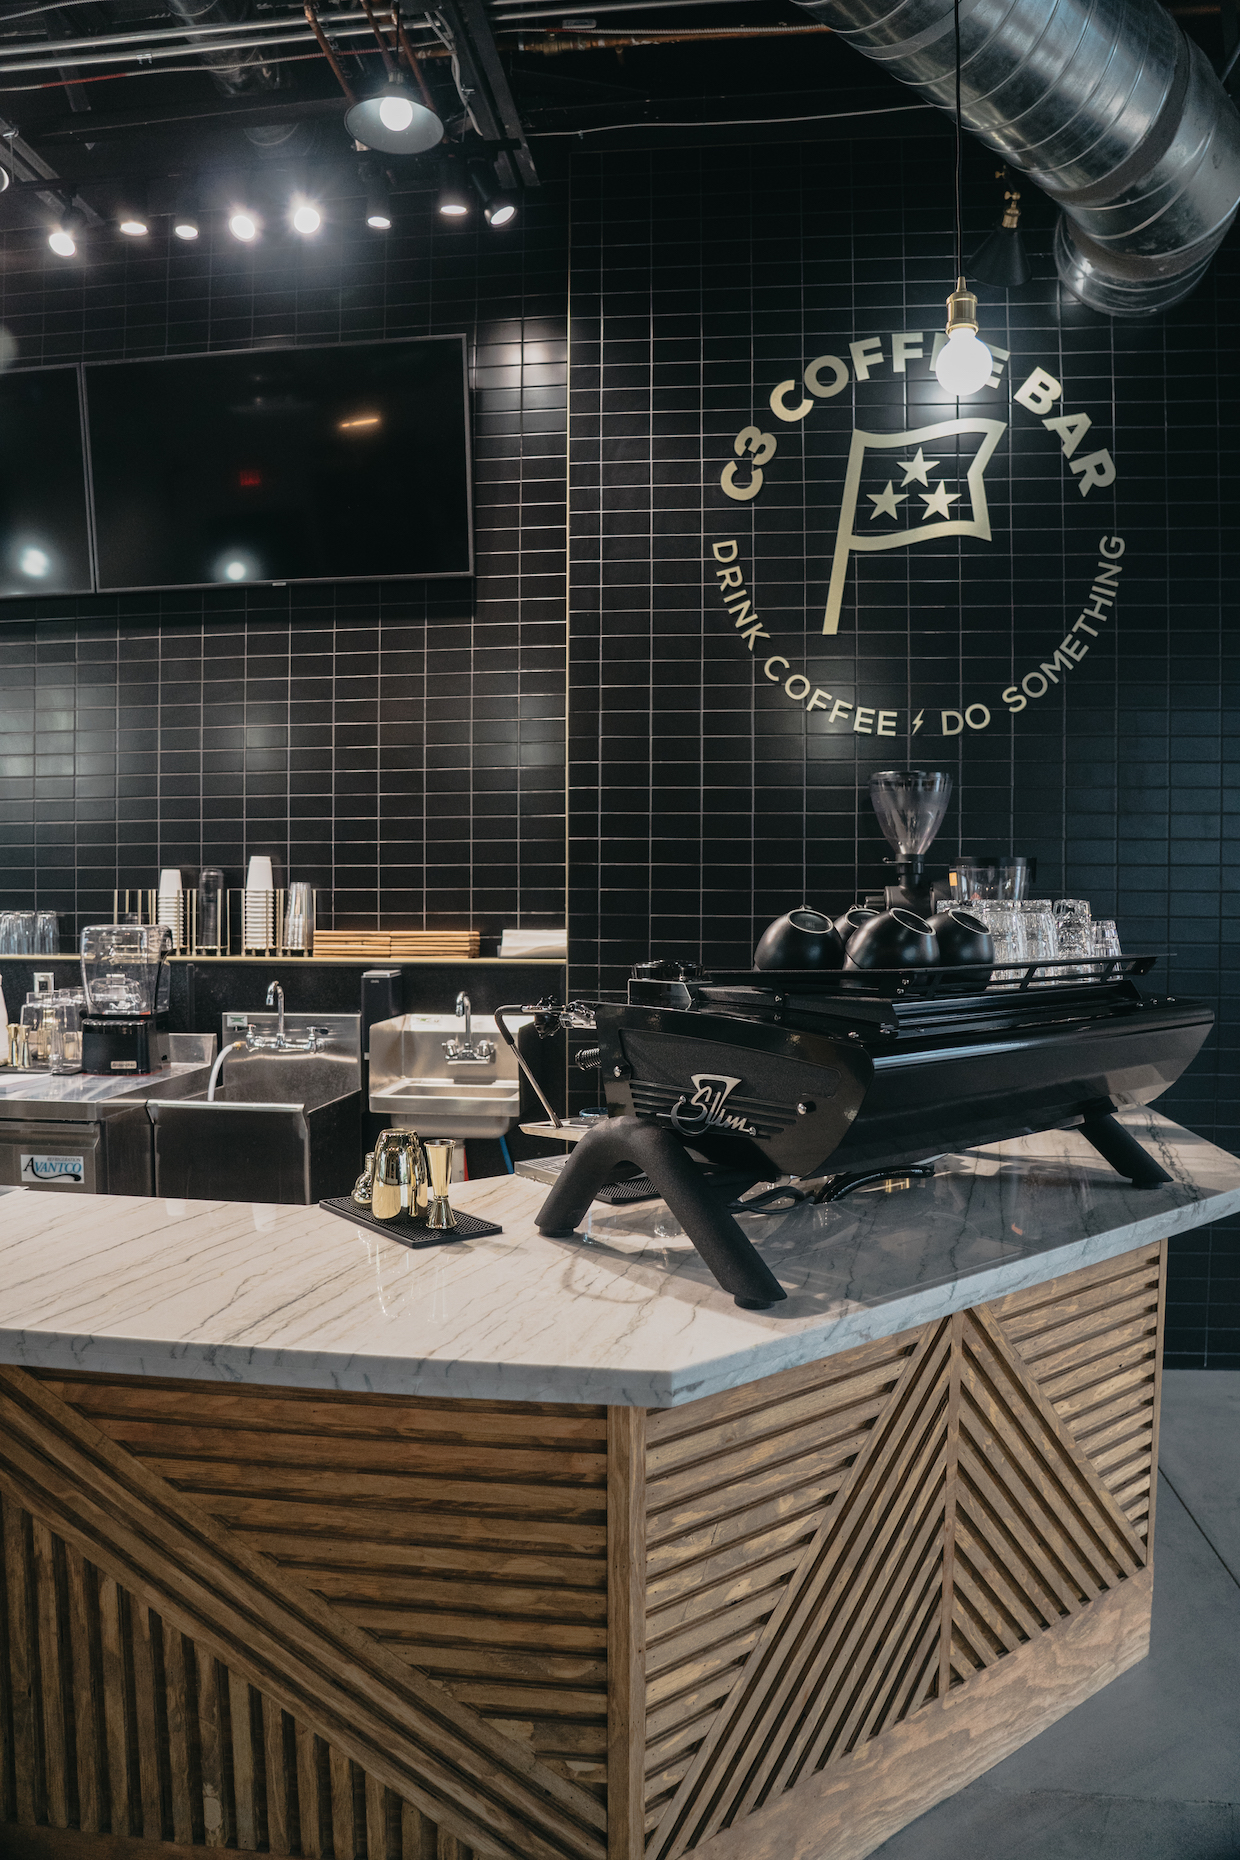 C3 Coffee Bar Las Vegas